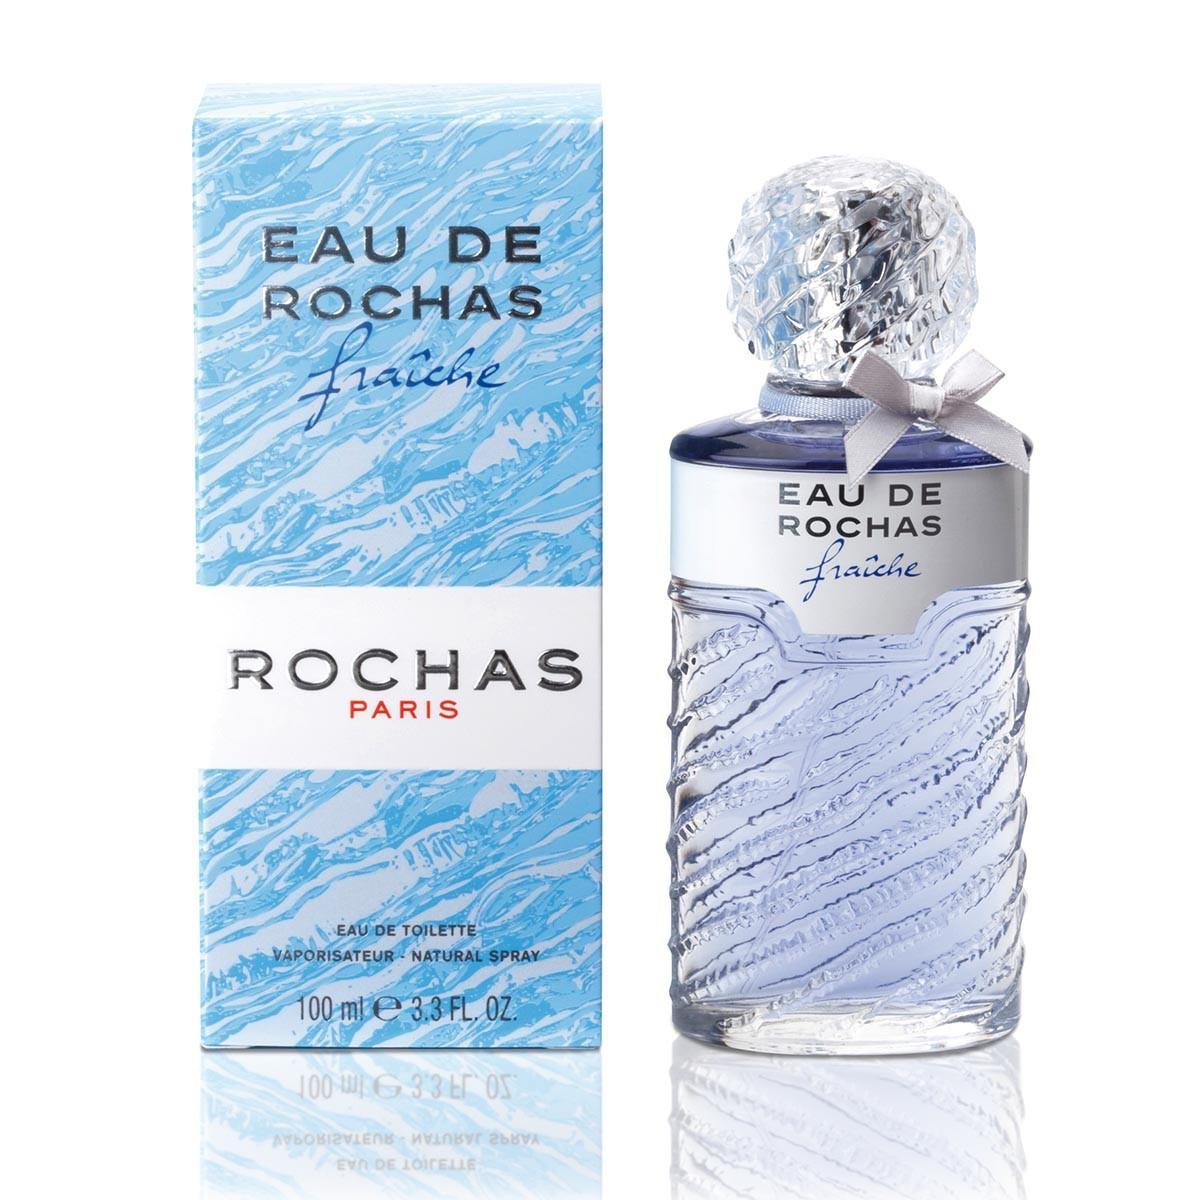 rochas fragrances eau fraiche eau de toilette 100ml dressinn. Black Bedroom Furniture Sets. Home Design Ideas